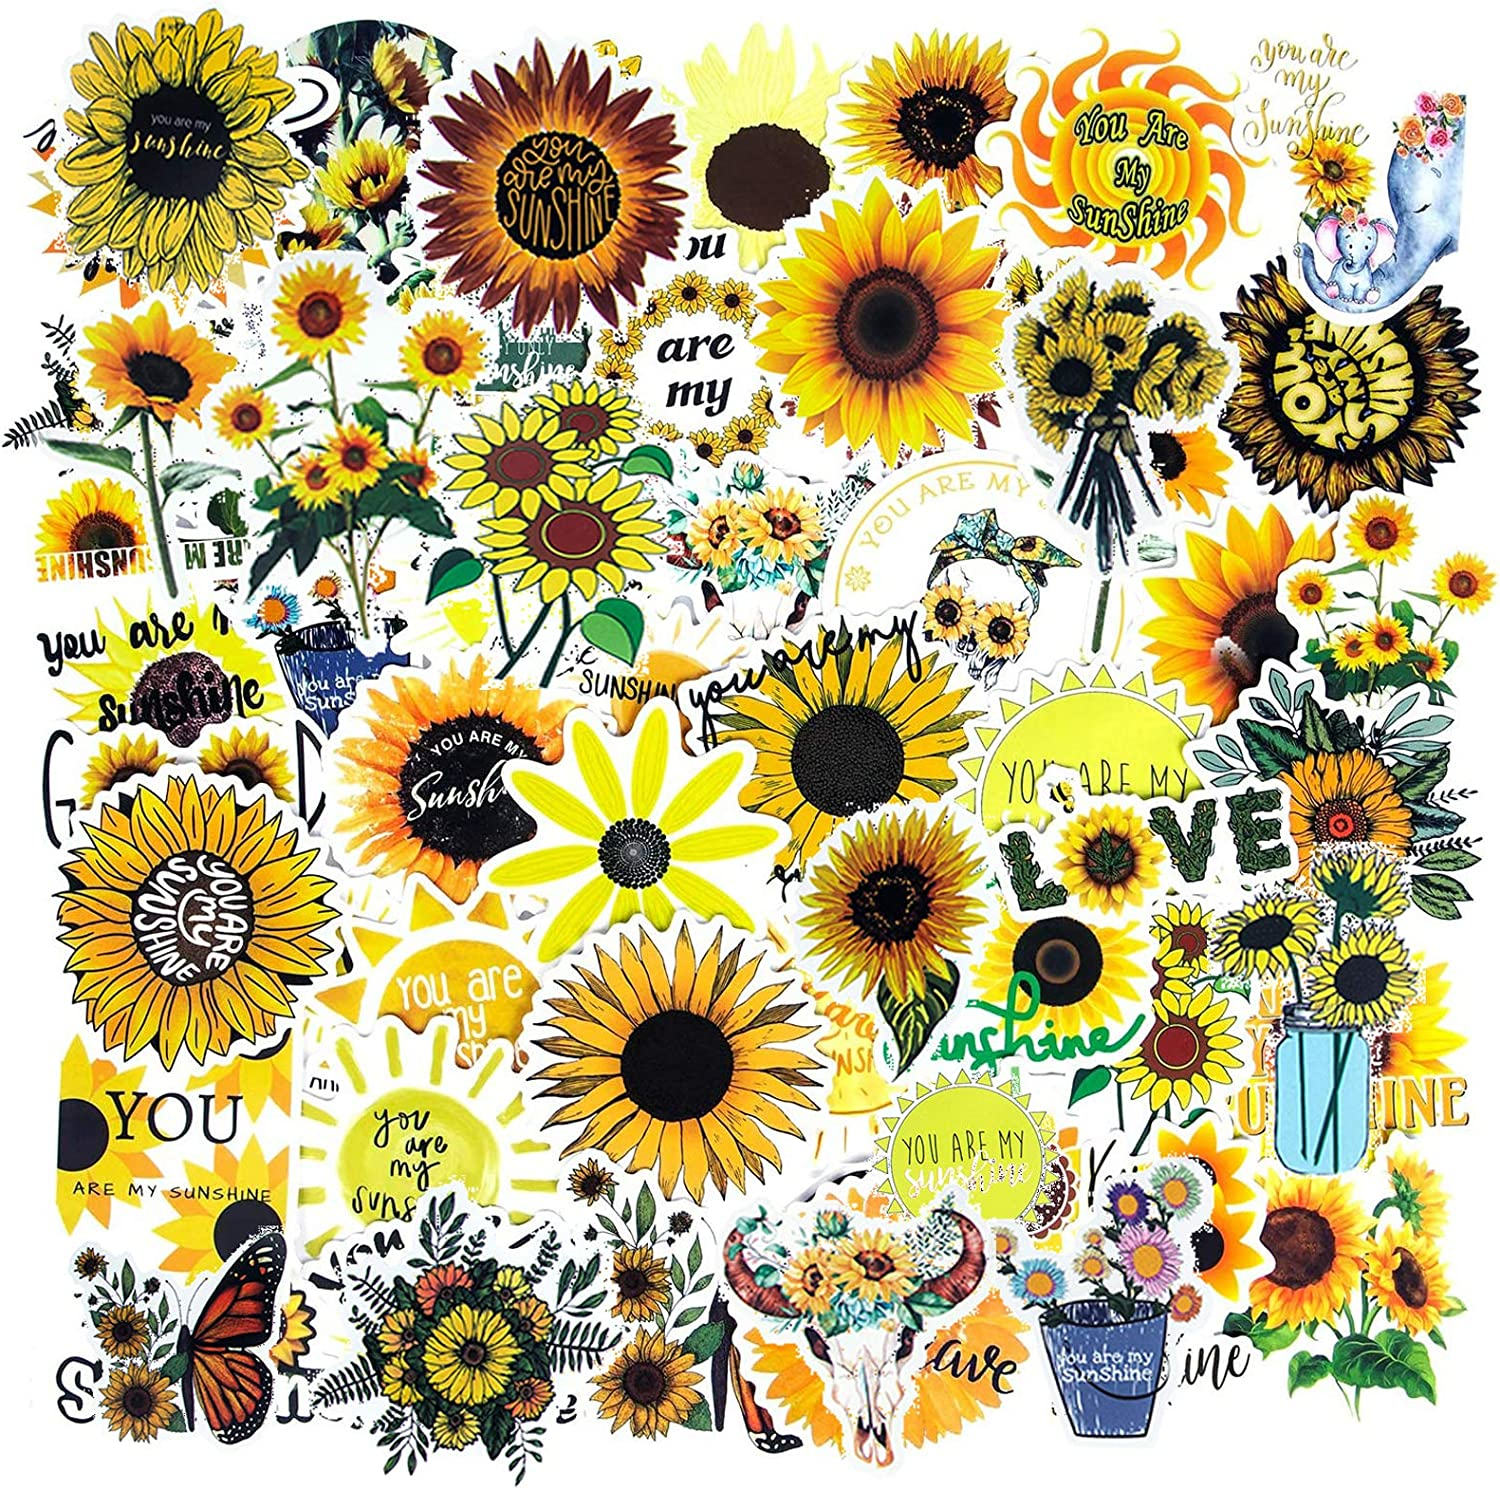 Sunflower Stickers, Waterproof Vinyl Stickers for Hydroflasks Laptop Stickers Water Bottle Stickers for Teens Computer Stickers Guitar Phone Car Skateboard Stickers for Girls (50PCS Sunflower Decals)